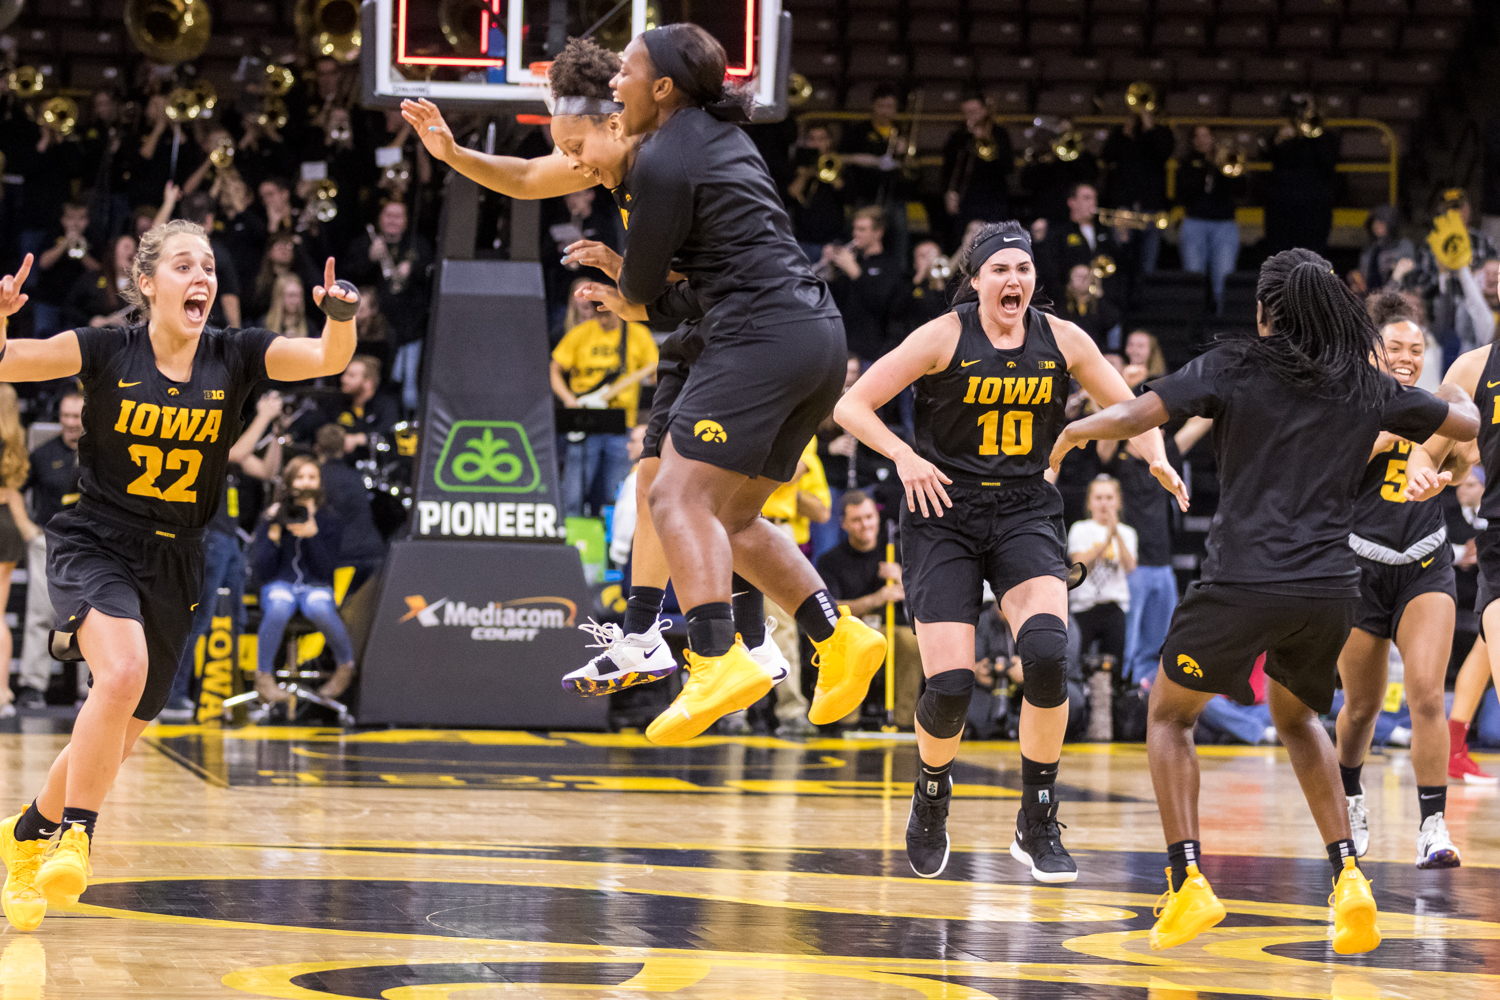 Iowa forward Megan Gustafson #10 and her teammates celebrate after defeating Iowa State in a women's basketball game at Carver-Hawkeye Arena on Wednesday, Dec. 5, 2018. The Hawkeyes defeated the Cyclones 73-70.